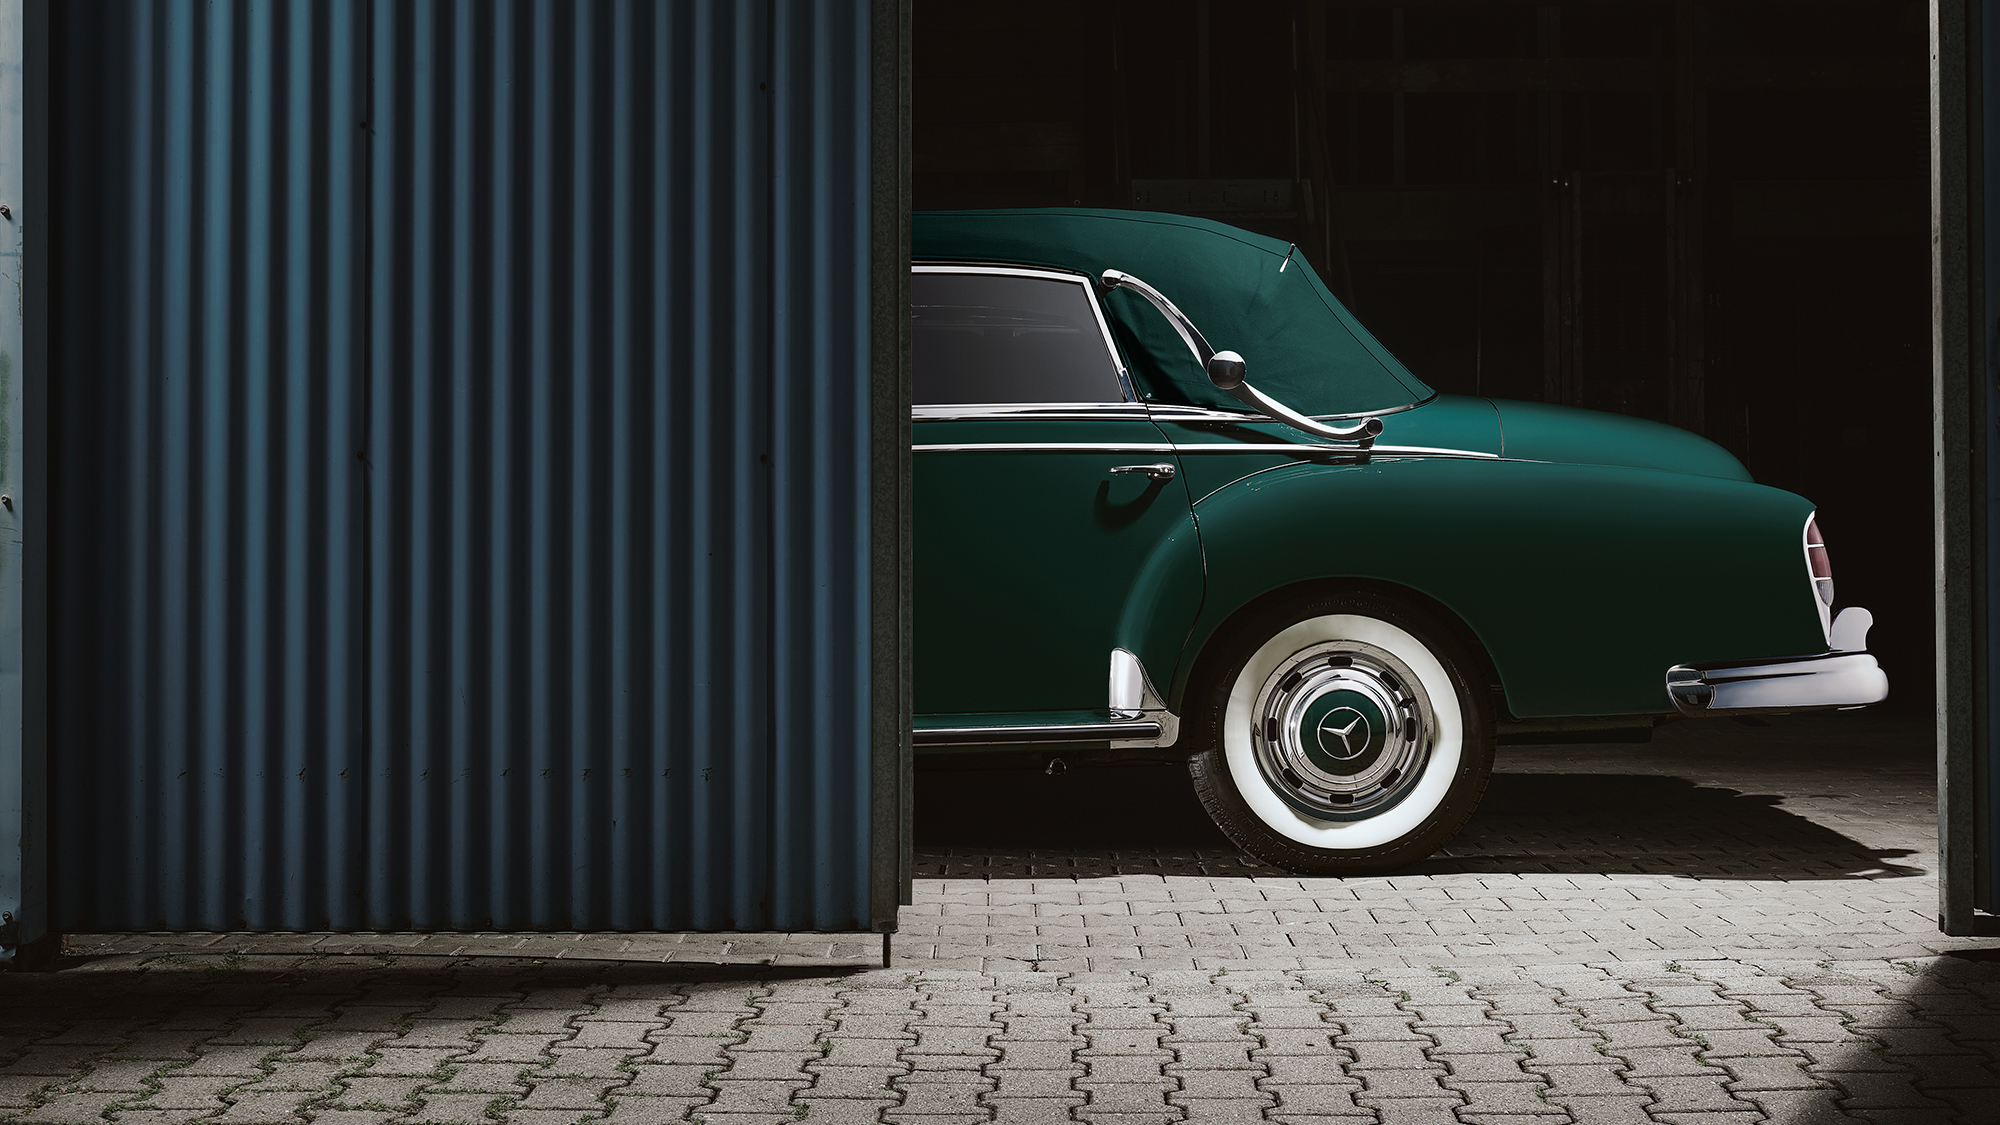 Elaborately staged automobile photo of a green Mercedes-Benz 300D classic car